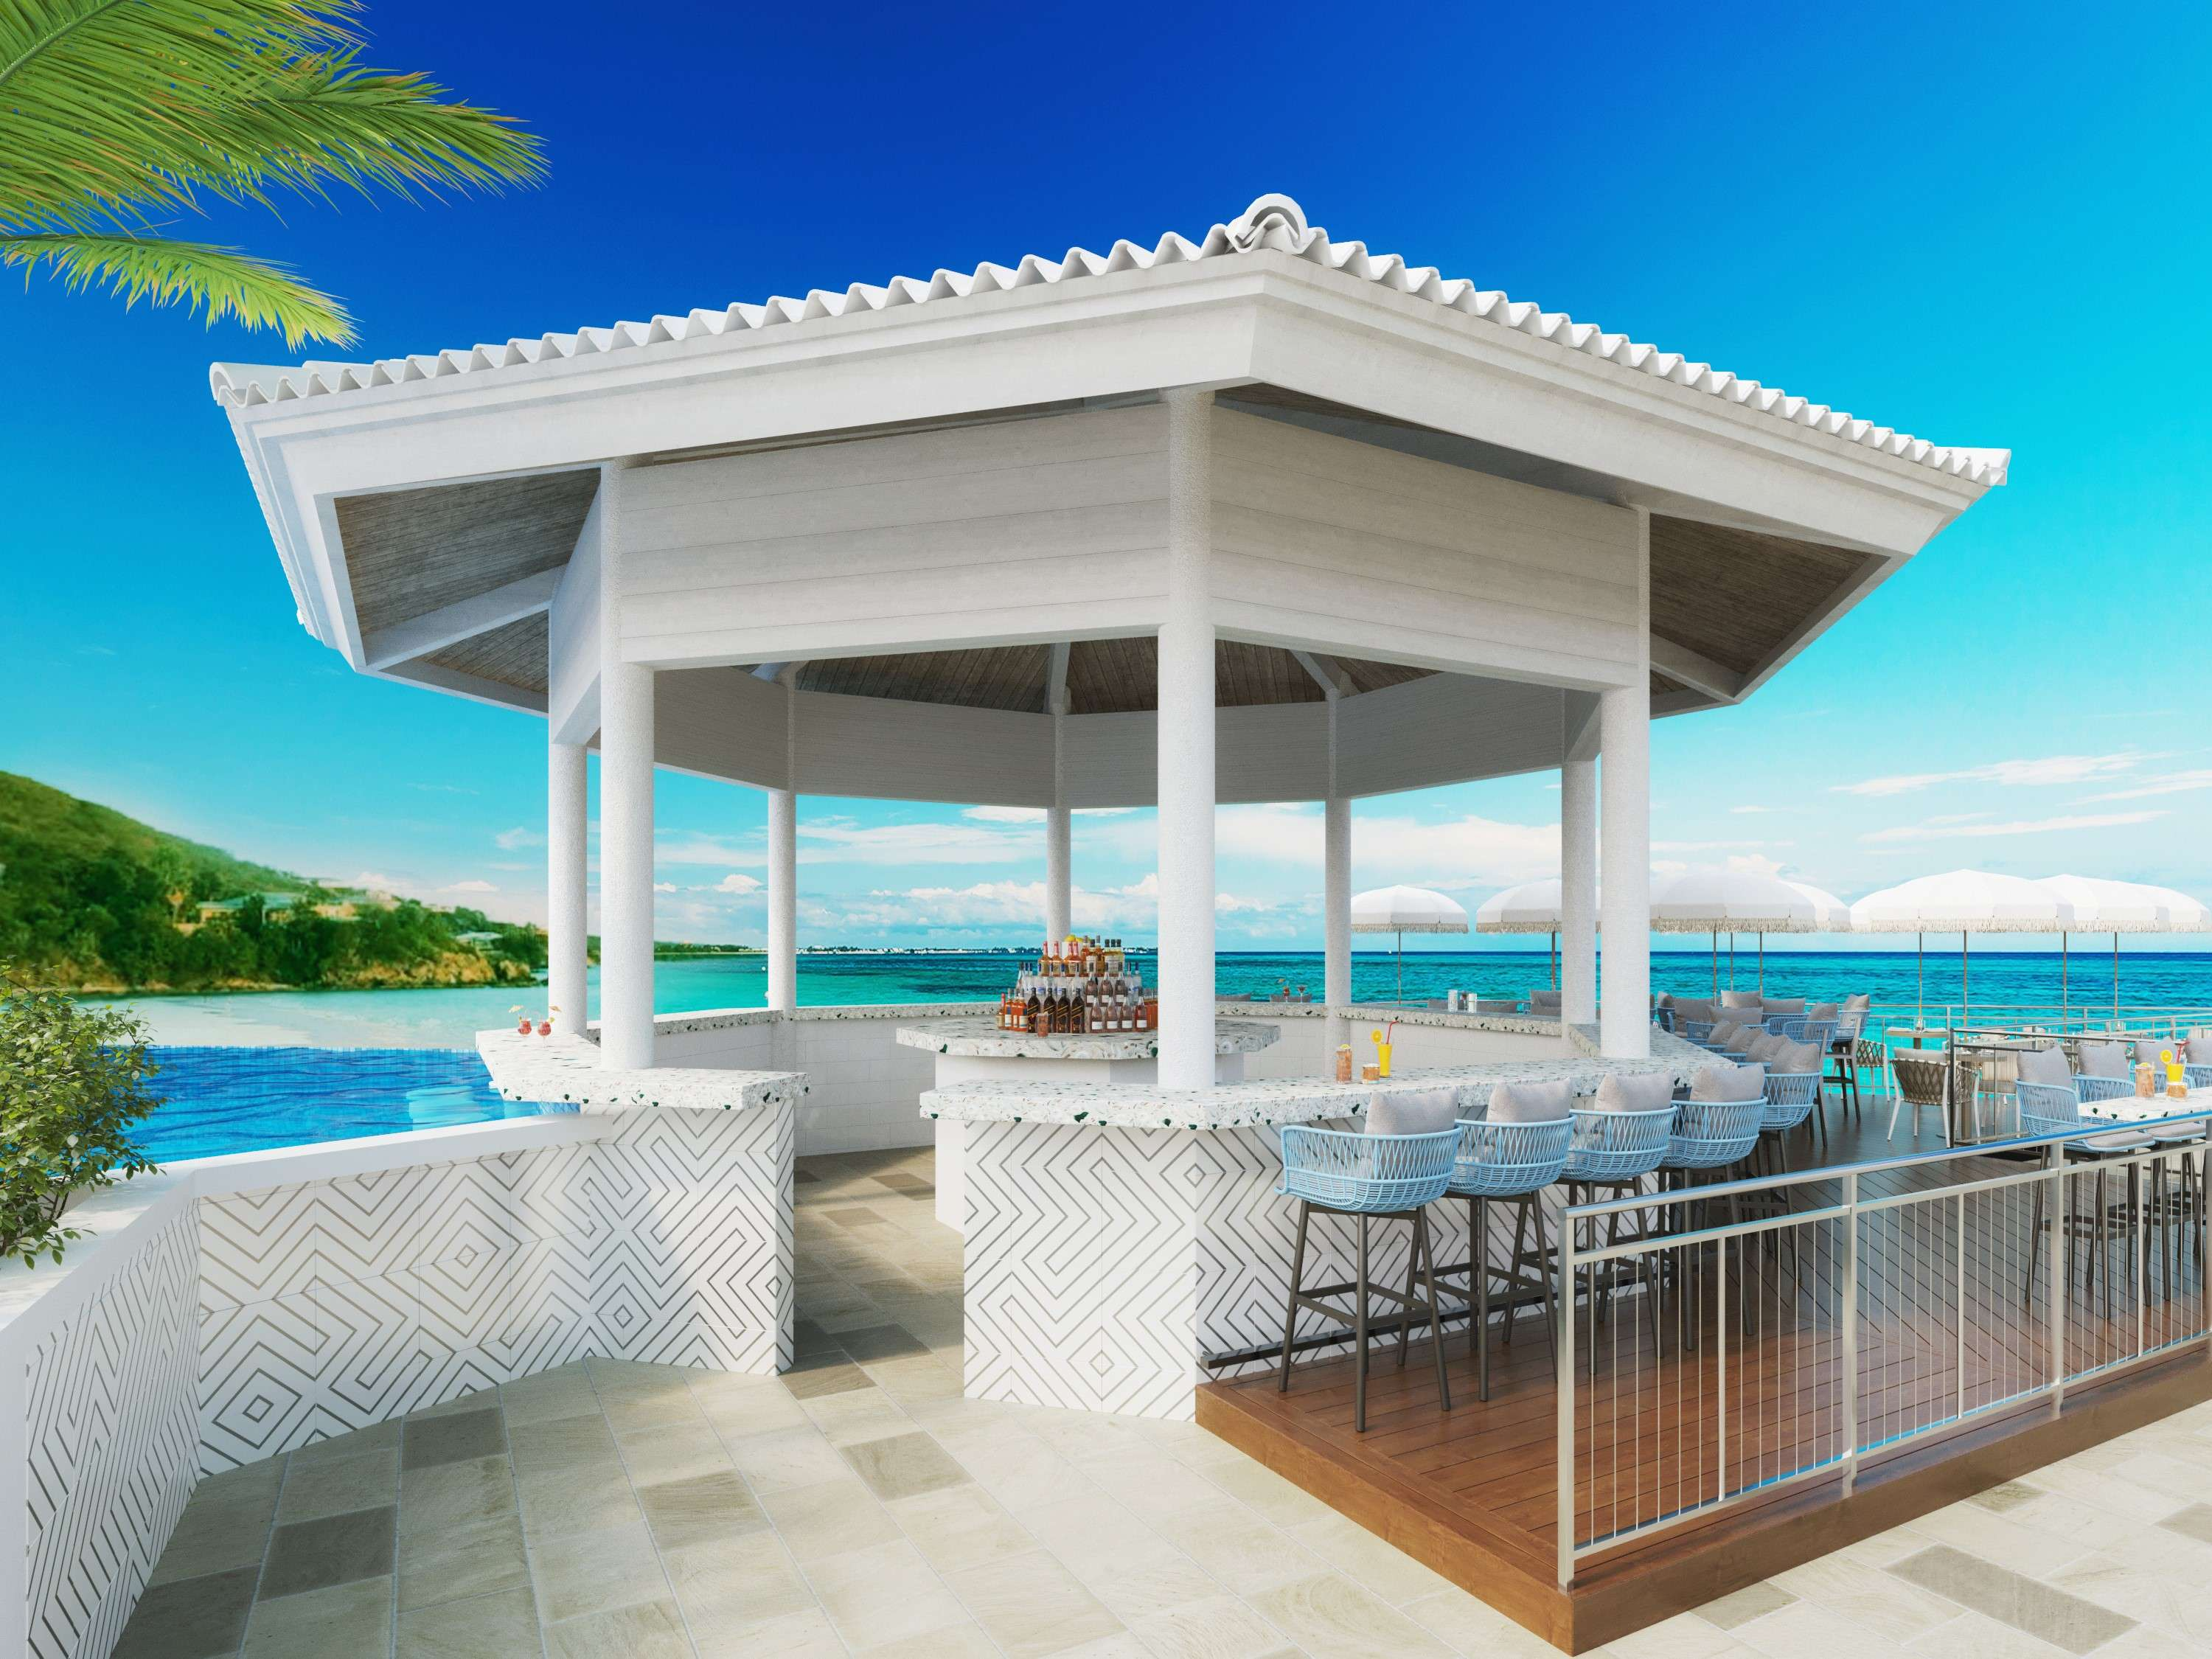 The breathtaking outdoor pool bar at Noni Beach Resort in St. Thomas